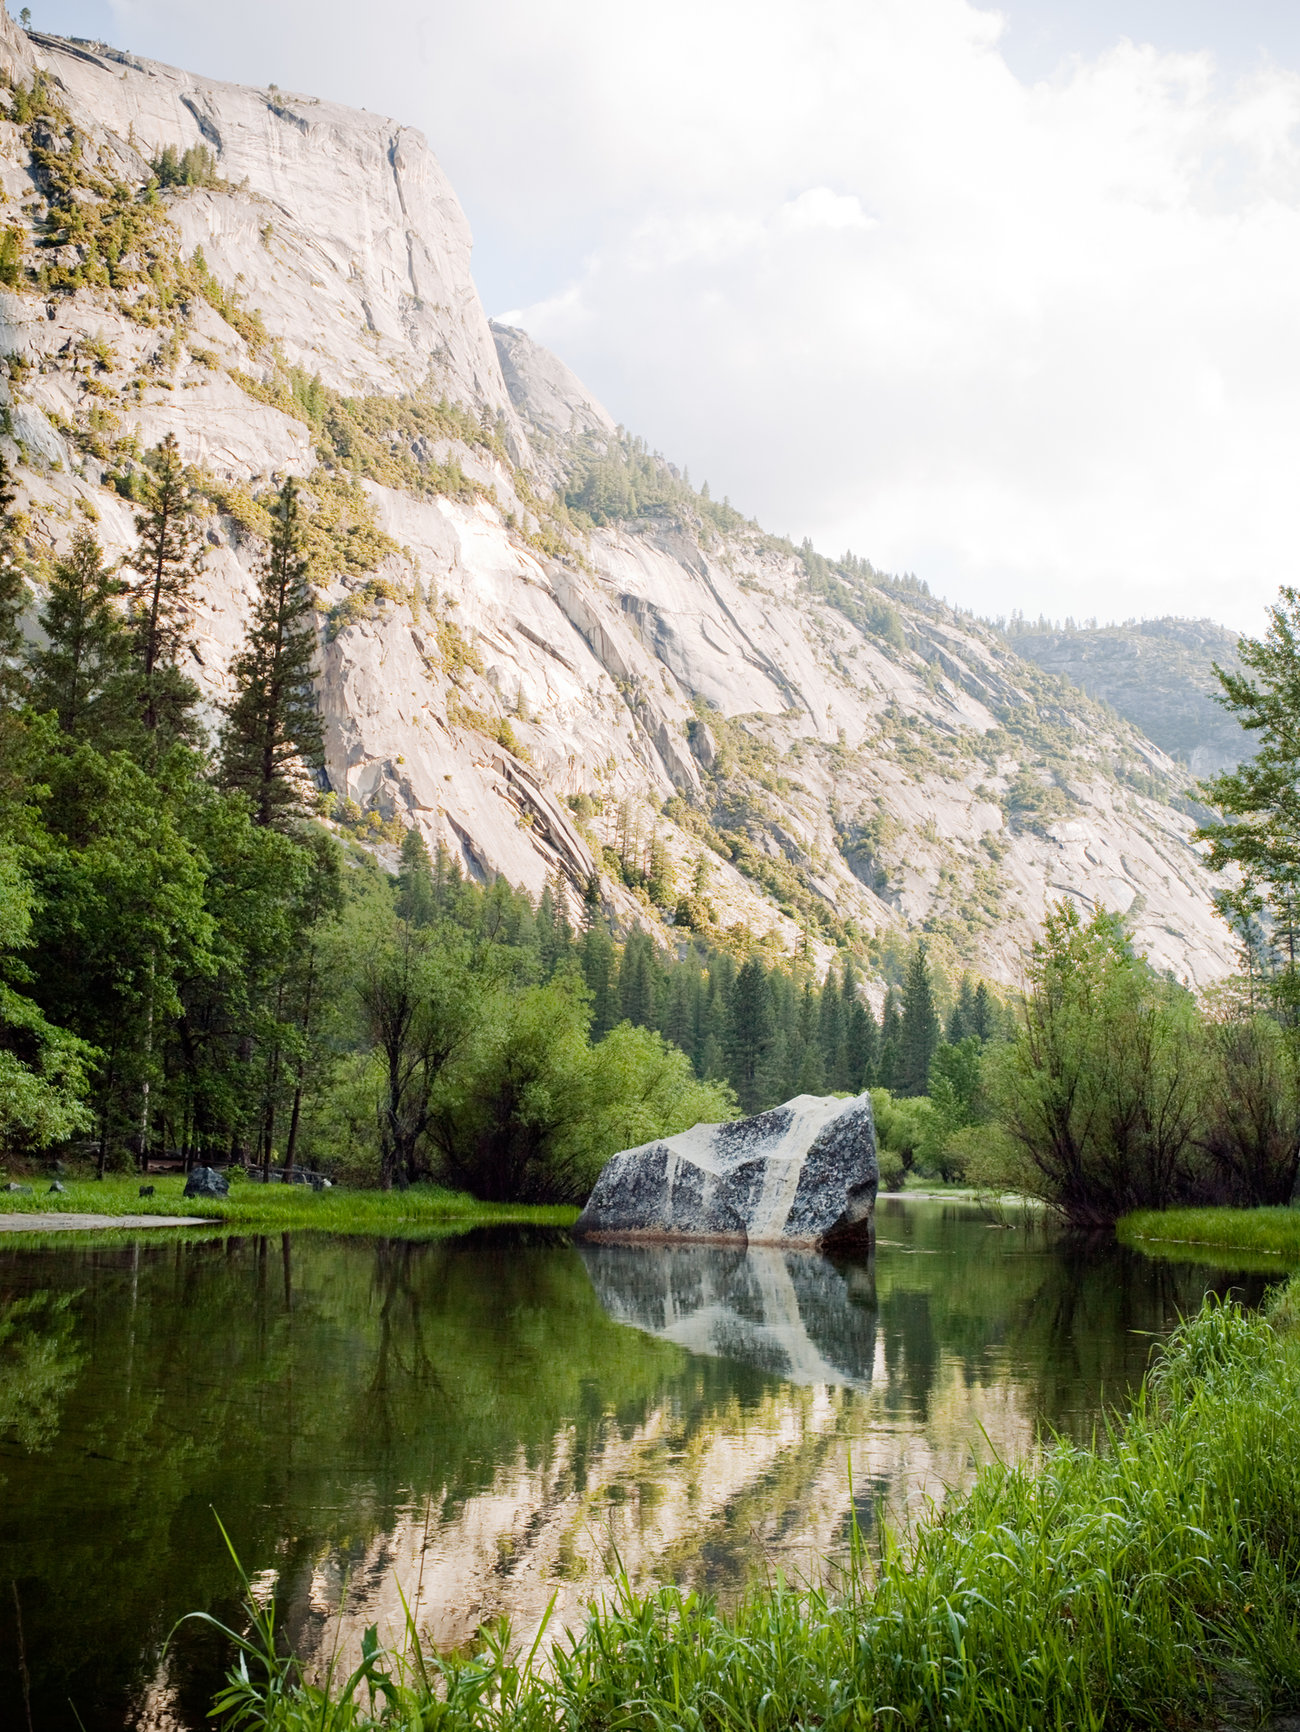 A Peek into Yosemite National Park's Origins